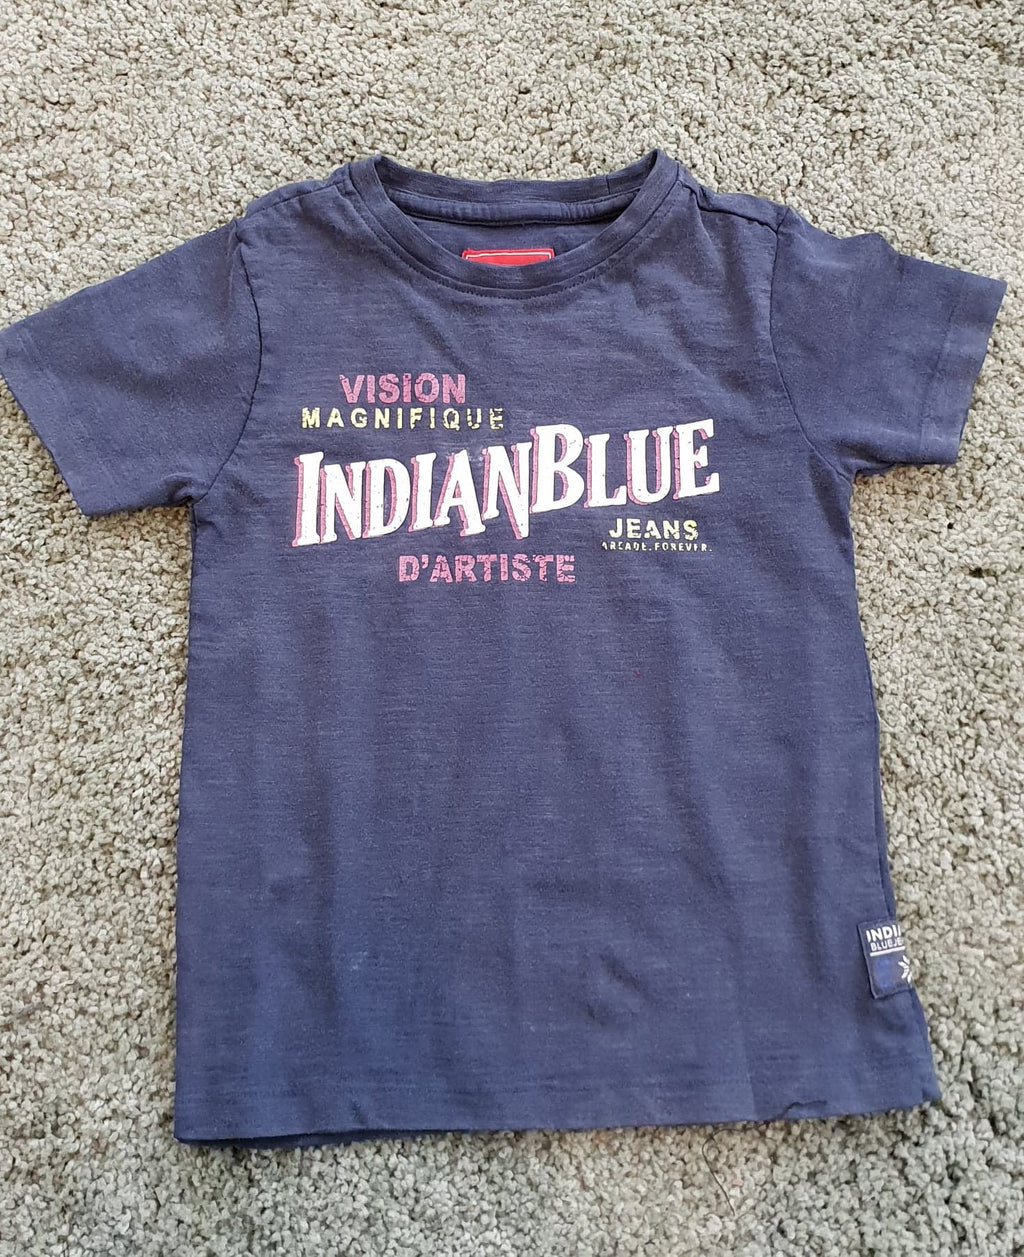 Indian Blue Jeans : T-shit Indianblue T-shirt Outlet Kamélie.be